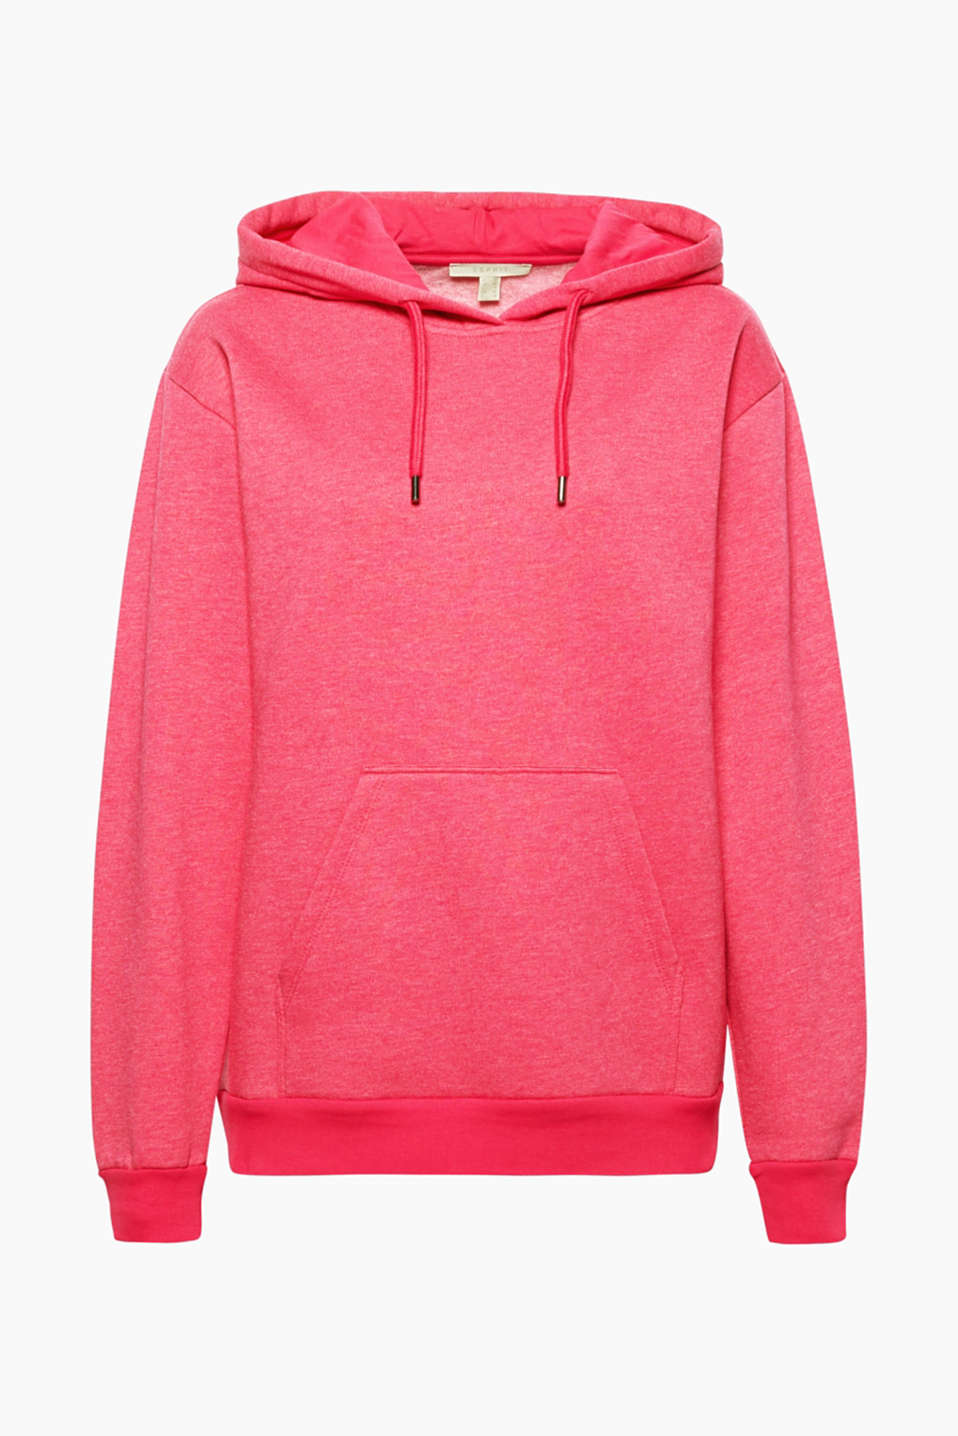 This hoodie made from dense sweatshirt fabric is a favourite piece with a feel-good factor.